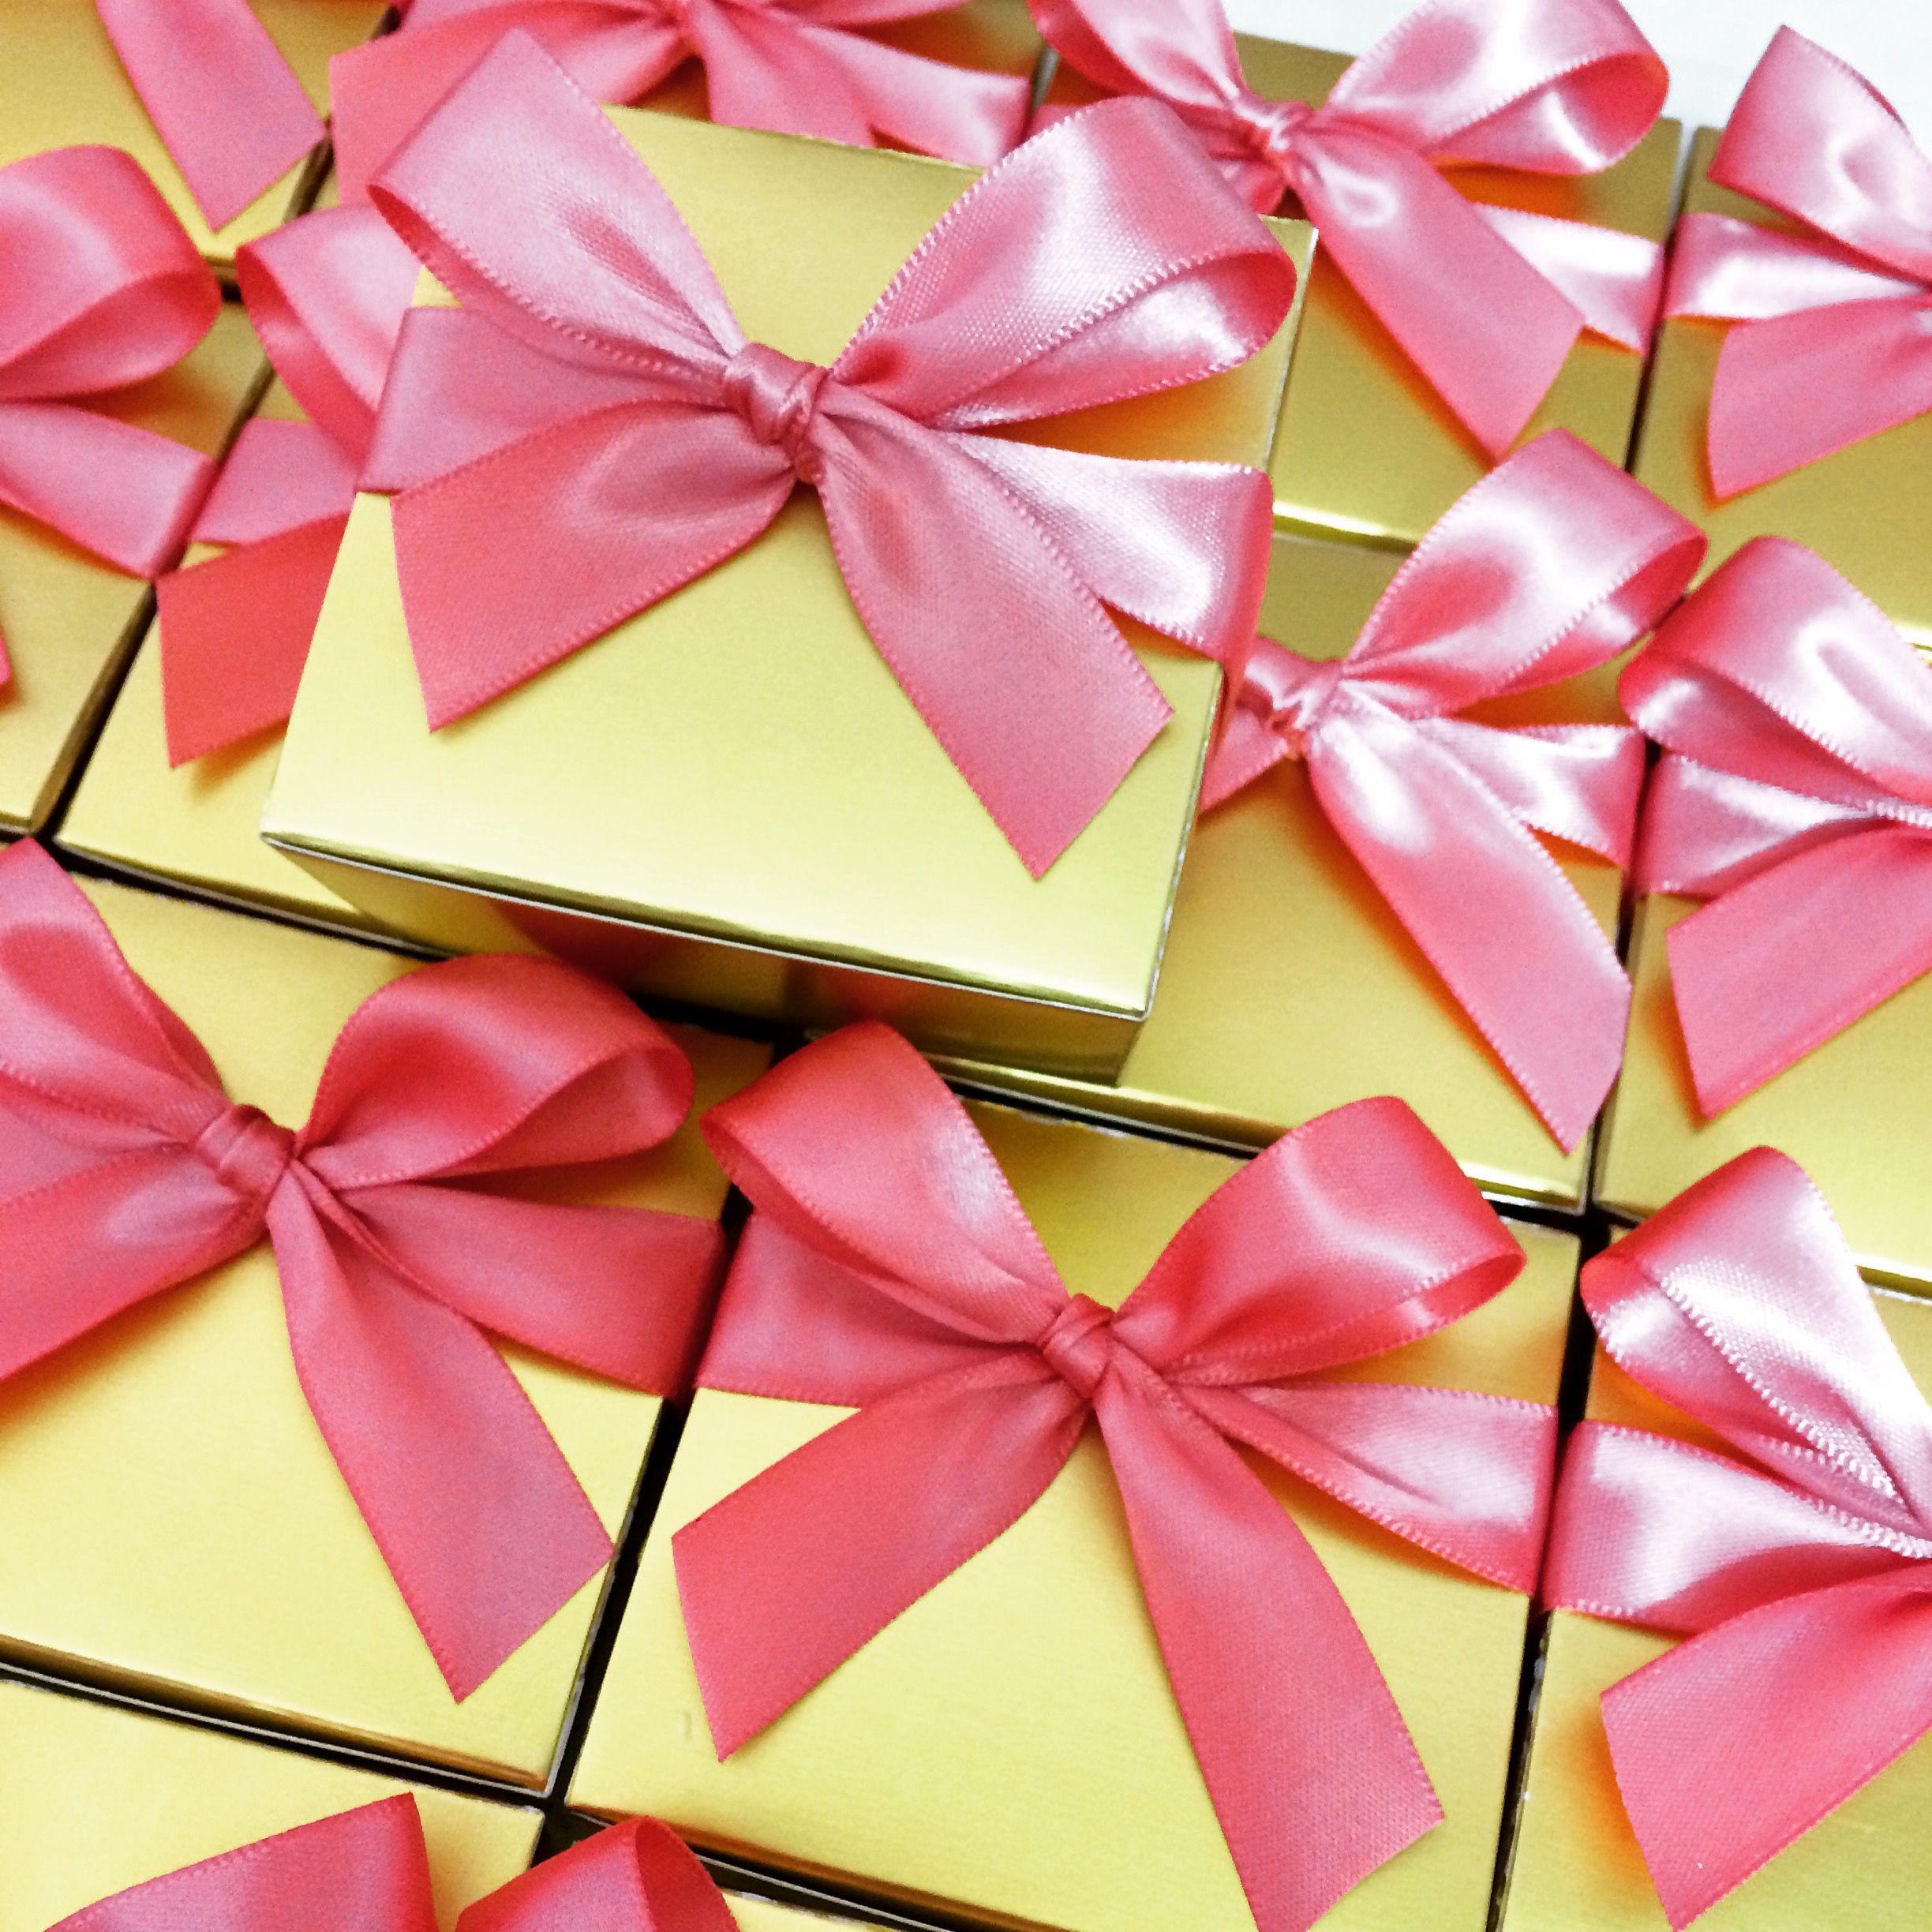 Delightful Caramel Gift Boxes (4 pieces) Dusty Gold & Pink | Mouth ...